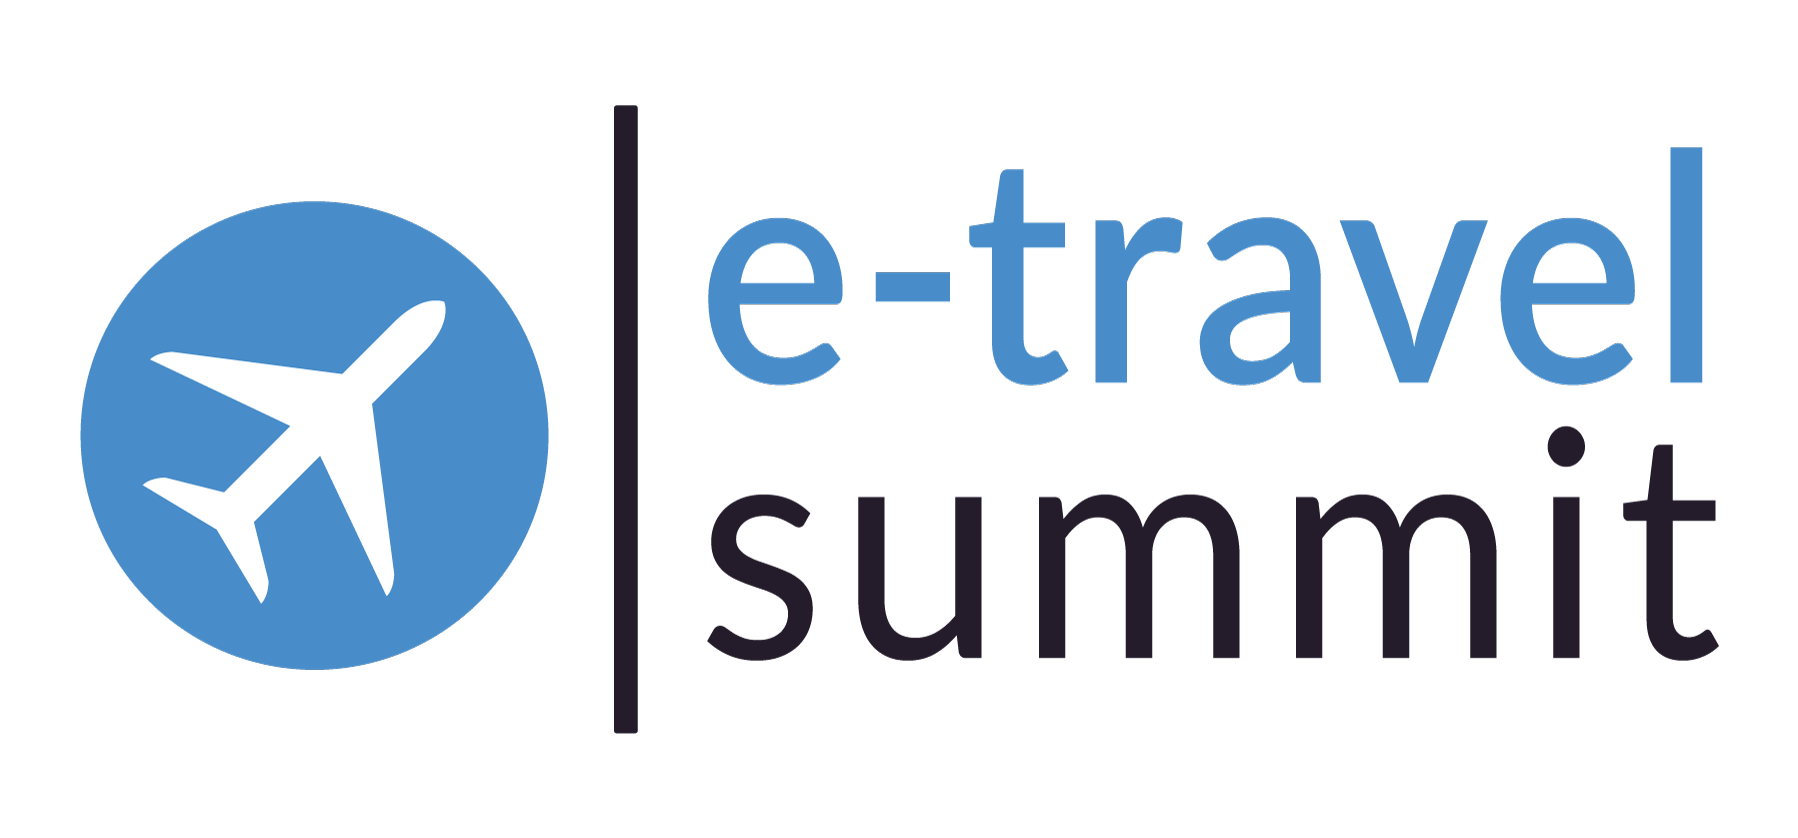 e-travel summit